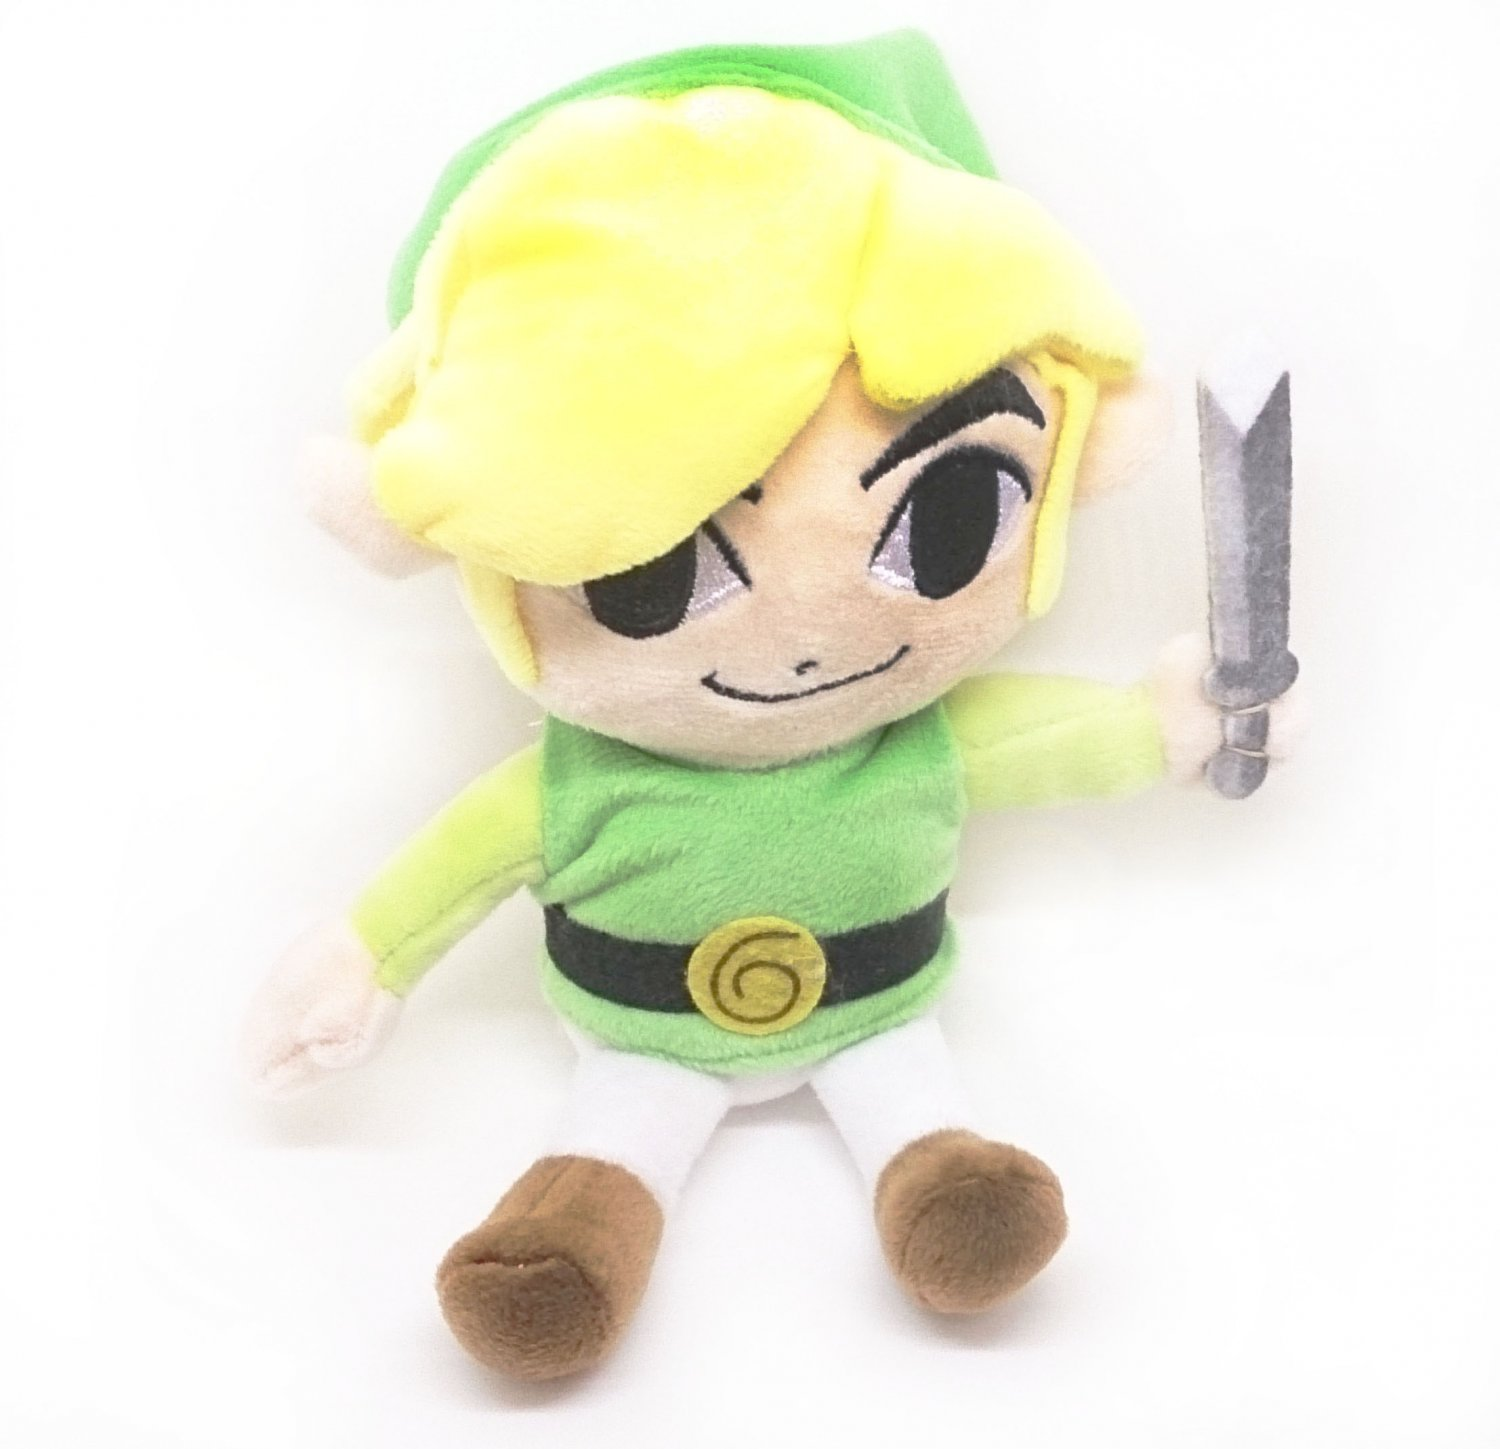 usa hobby stores with Toon Link Plushie 7 Legend Of Zelda on Train Hobby Shops Melbourne together with Toon Link Plushie 7 Legend Of Zelda besides Mosaic Tiles For Crafts In Bulk Elegant 2018 Glass Mosaic Tile Swimming Pool Blue Wall Mosaic Shell Mosaic also Warhammer Watchtower also Unfinished Wood Furniture Store.